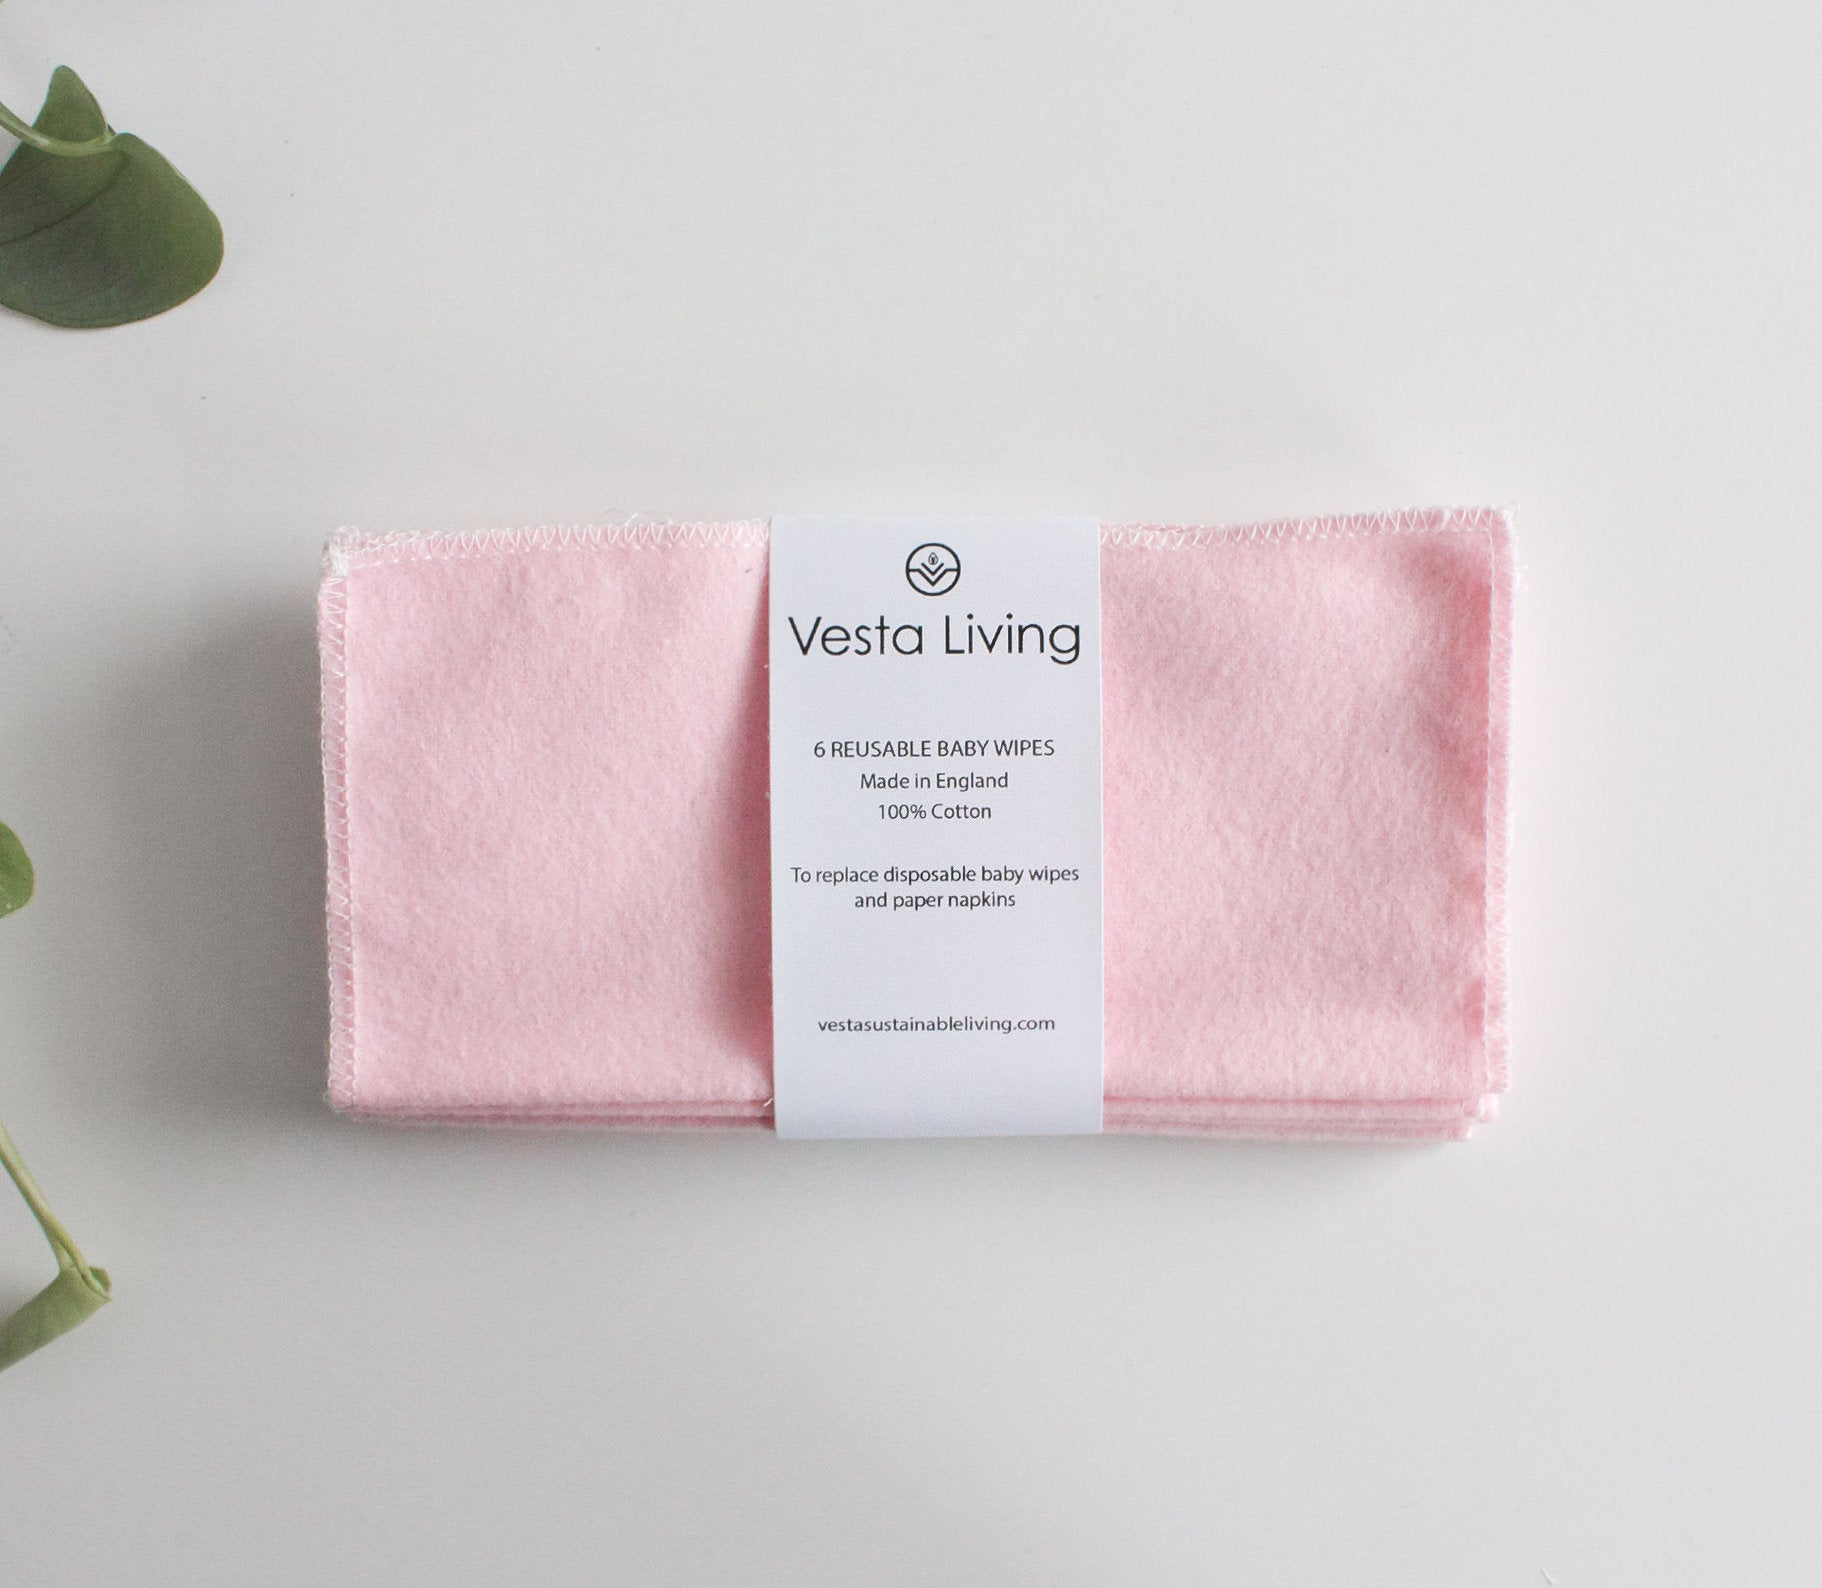 vesta living cotton baby wipes in blush pink